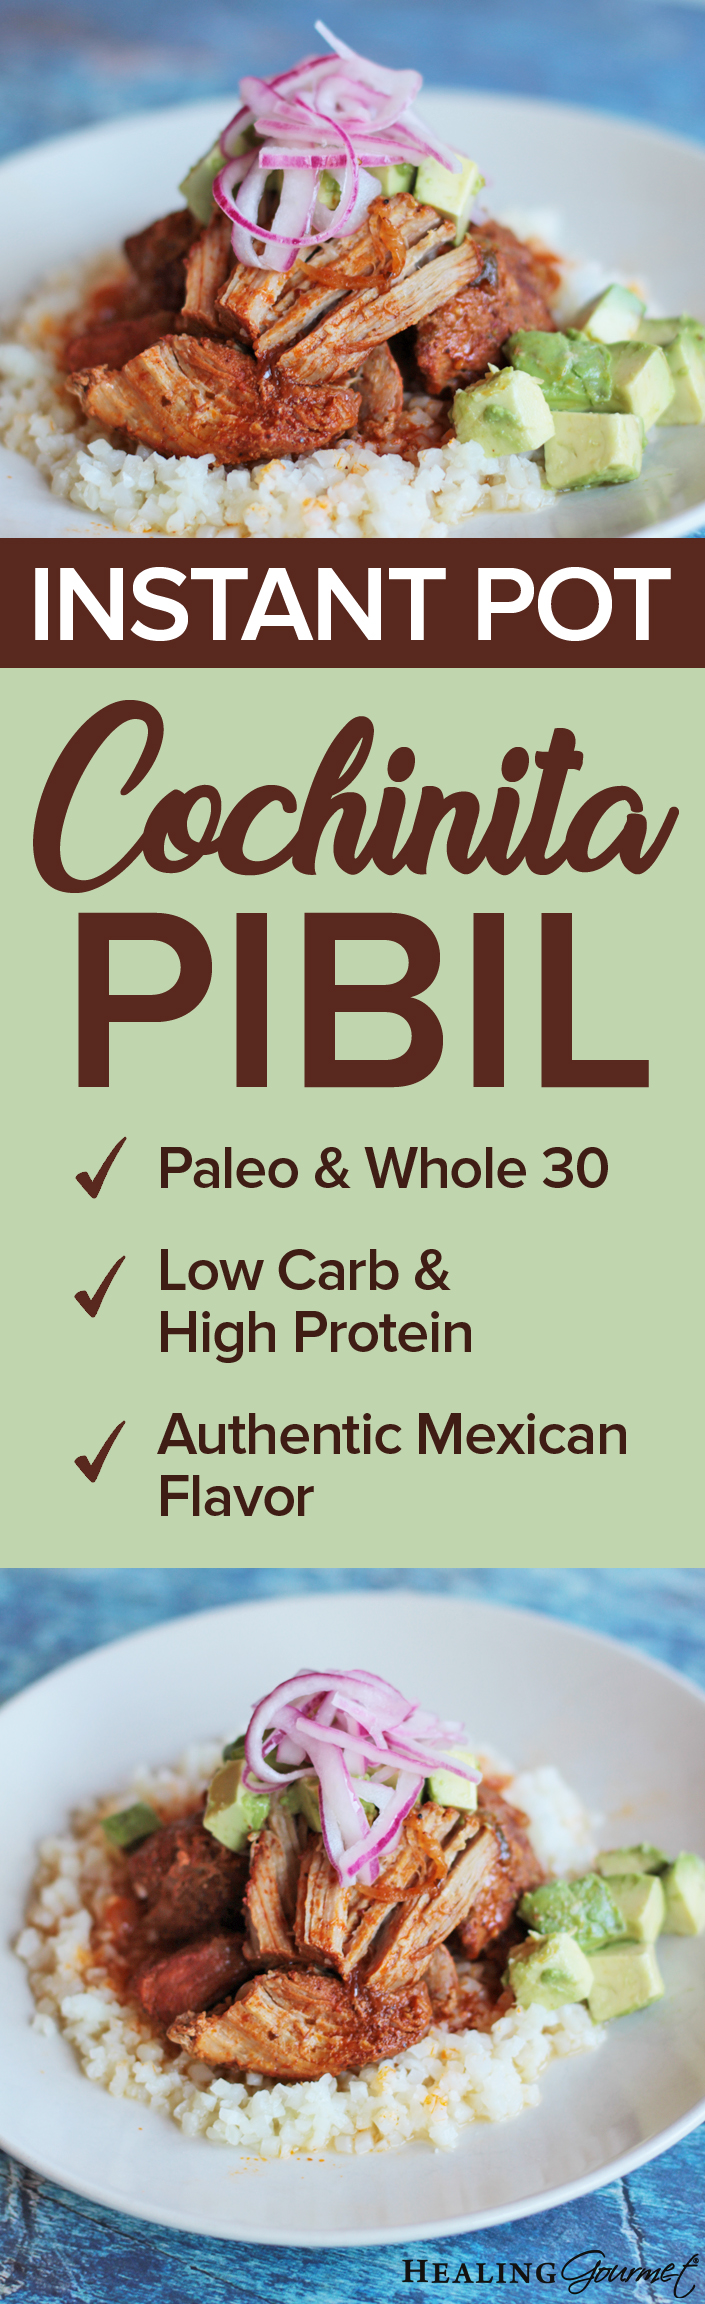 INSTANT POT COCHINITA PIBIL - PIN